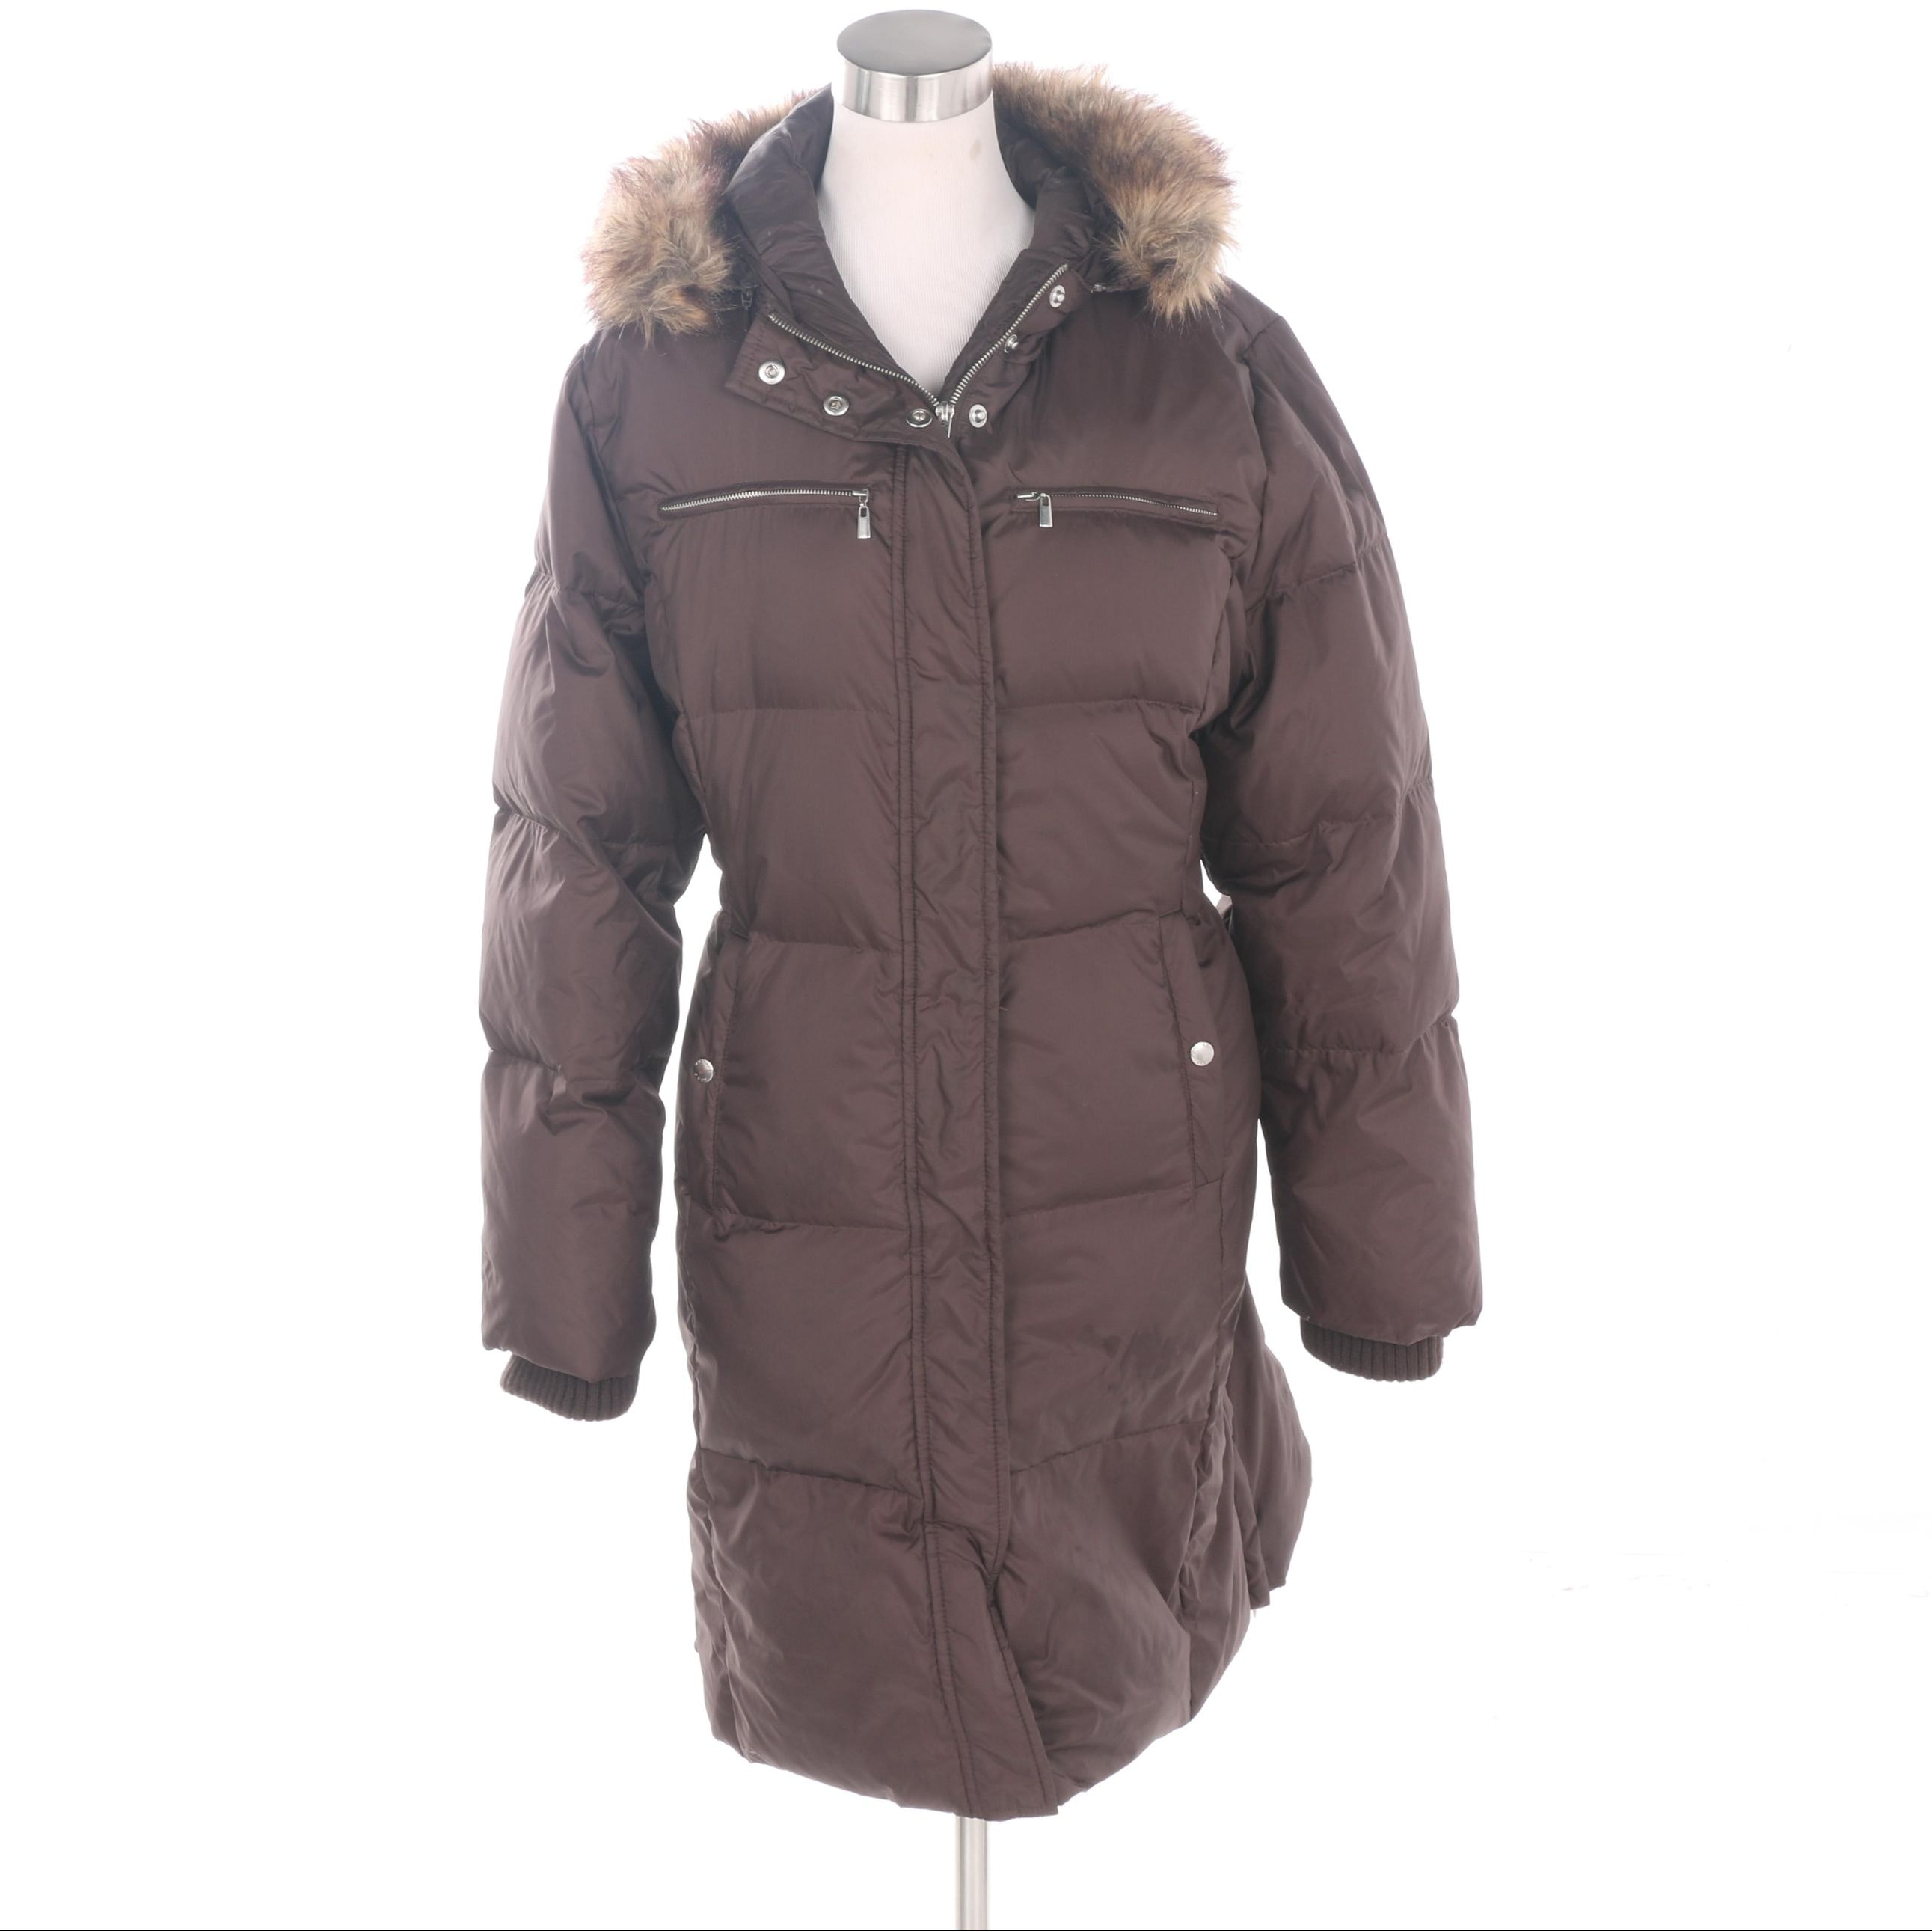 Women's MICHAEL Michael Kors Brown Puffer Coat with Faux Fur Trim